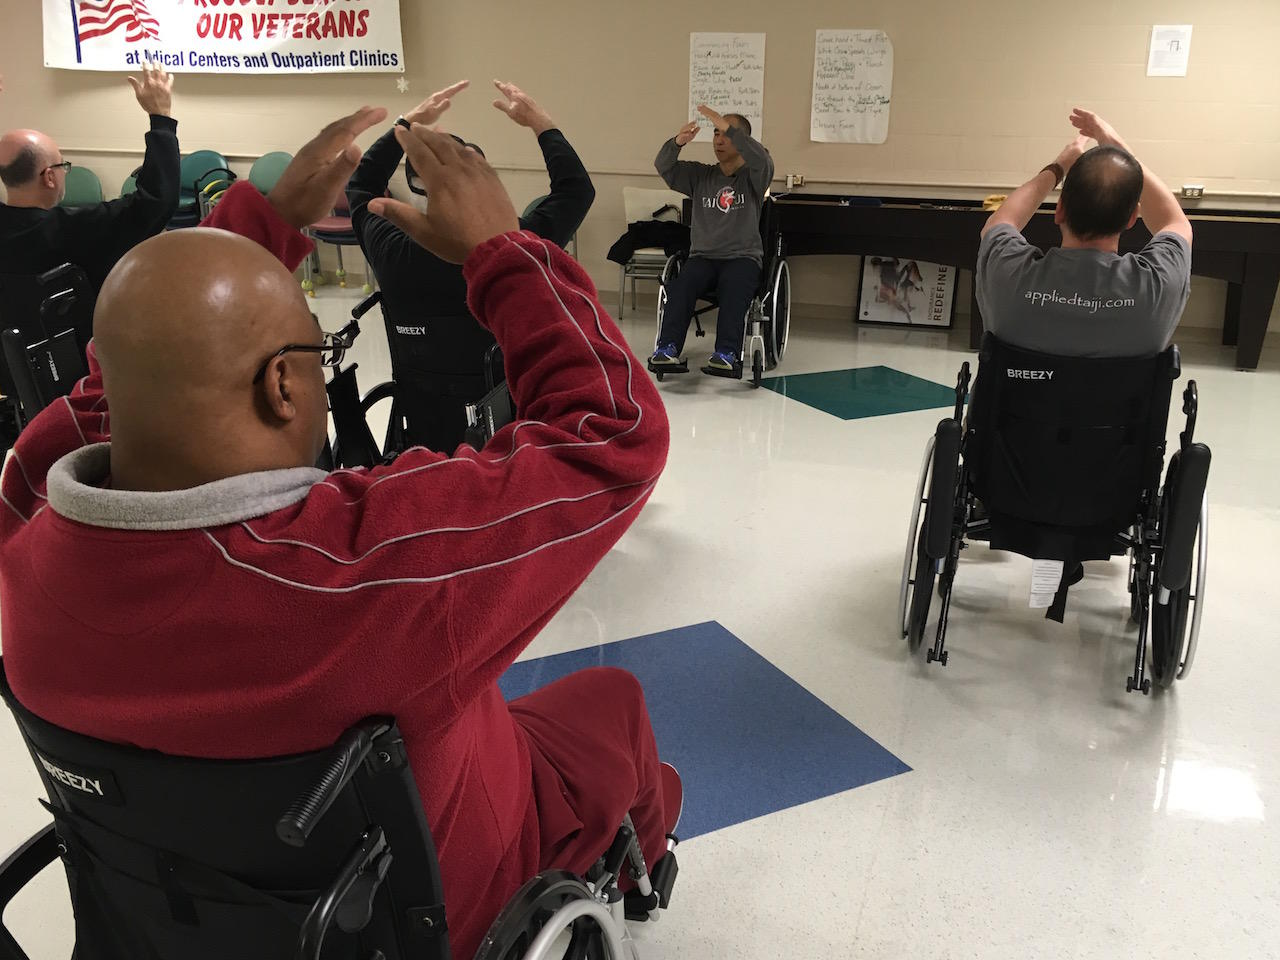 wheelchair fight hospital chairs that recline to control pain battle ptsd and other ills tennessee vets thomas sales says tai chi has helped him with his during panic attacks he